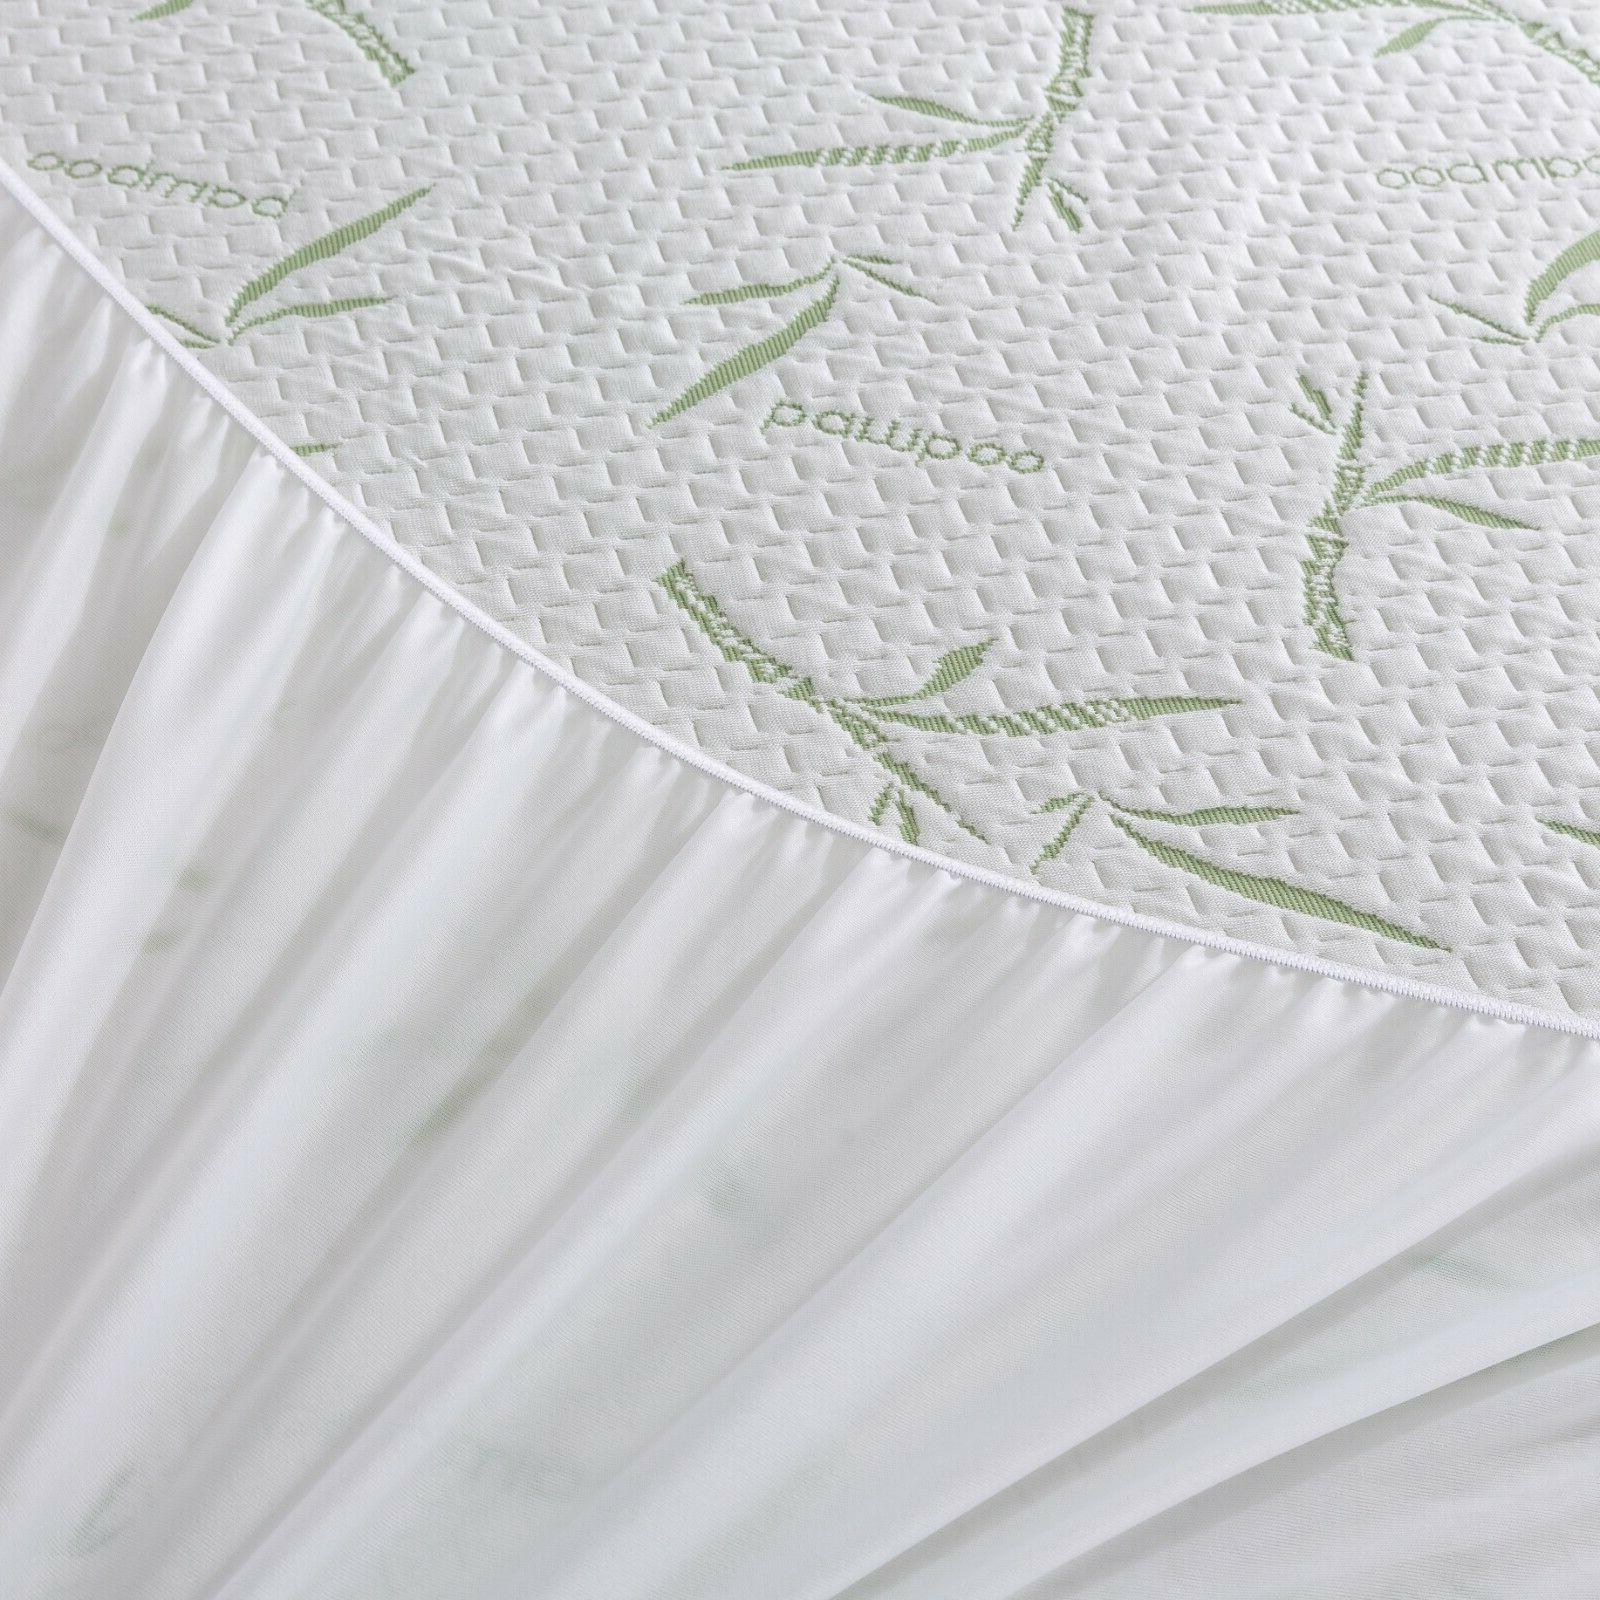 Waterproof Bamboo Protector Quilted Bed Cover